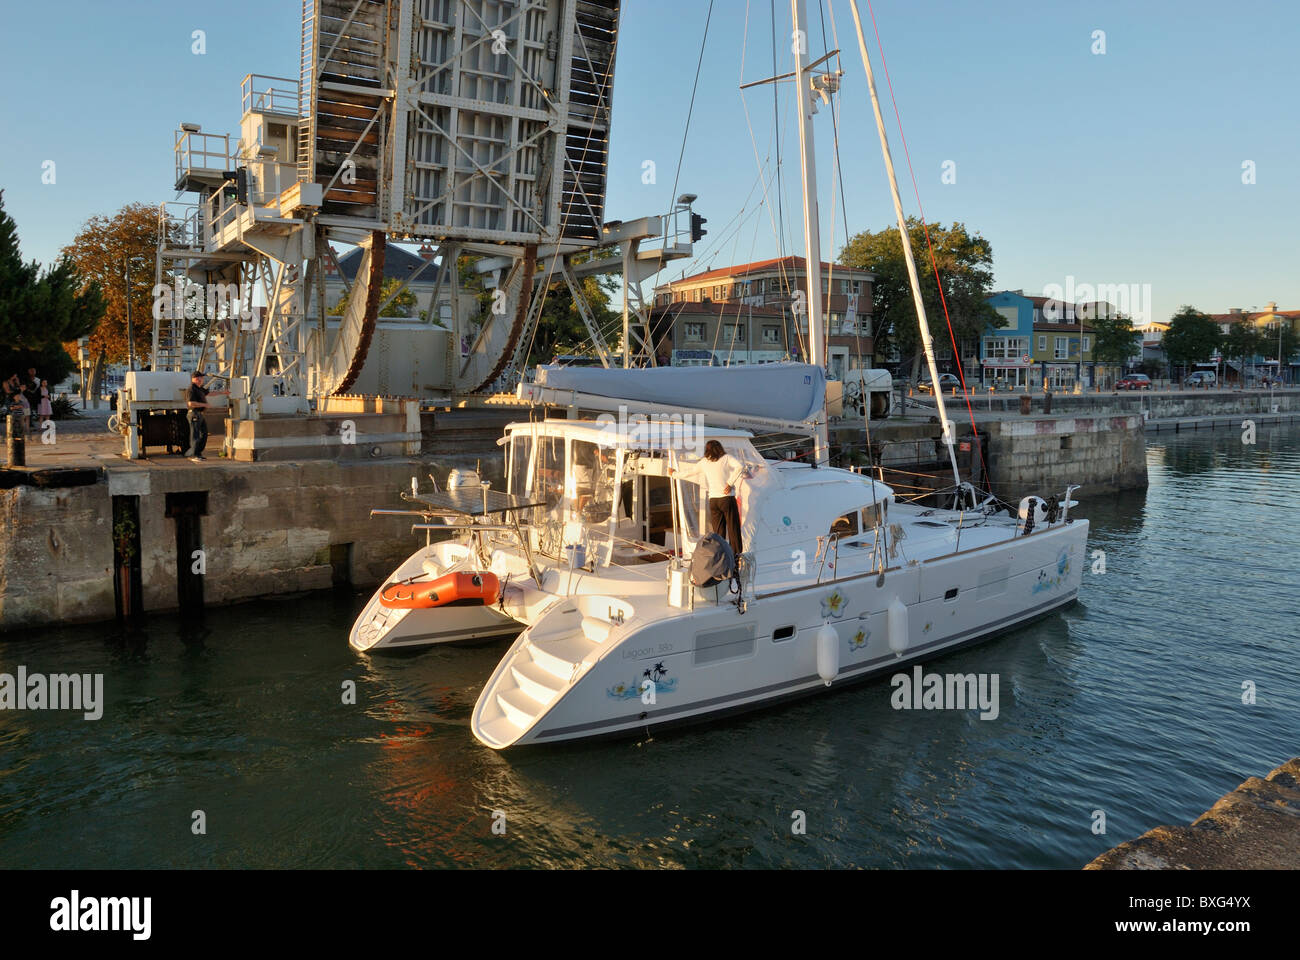 Gabut Bascule rolling lift bridge raised as Catamaran enters the inner harbor of La Rochelle, Charente-Maritime - Stock Image